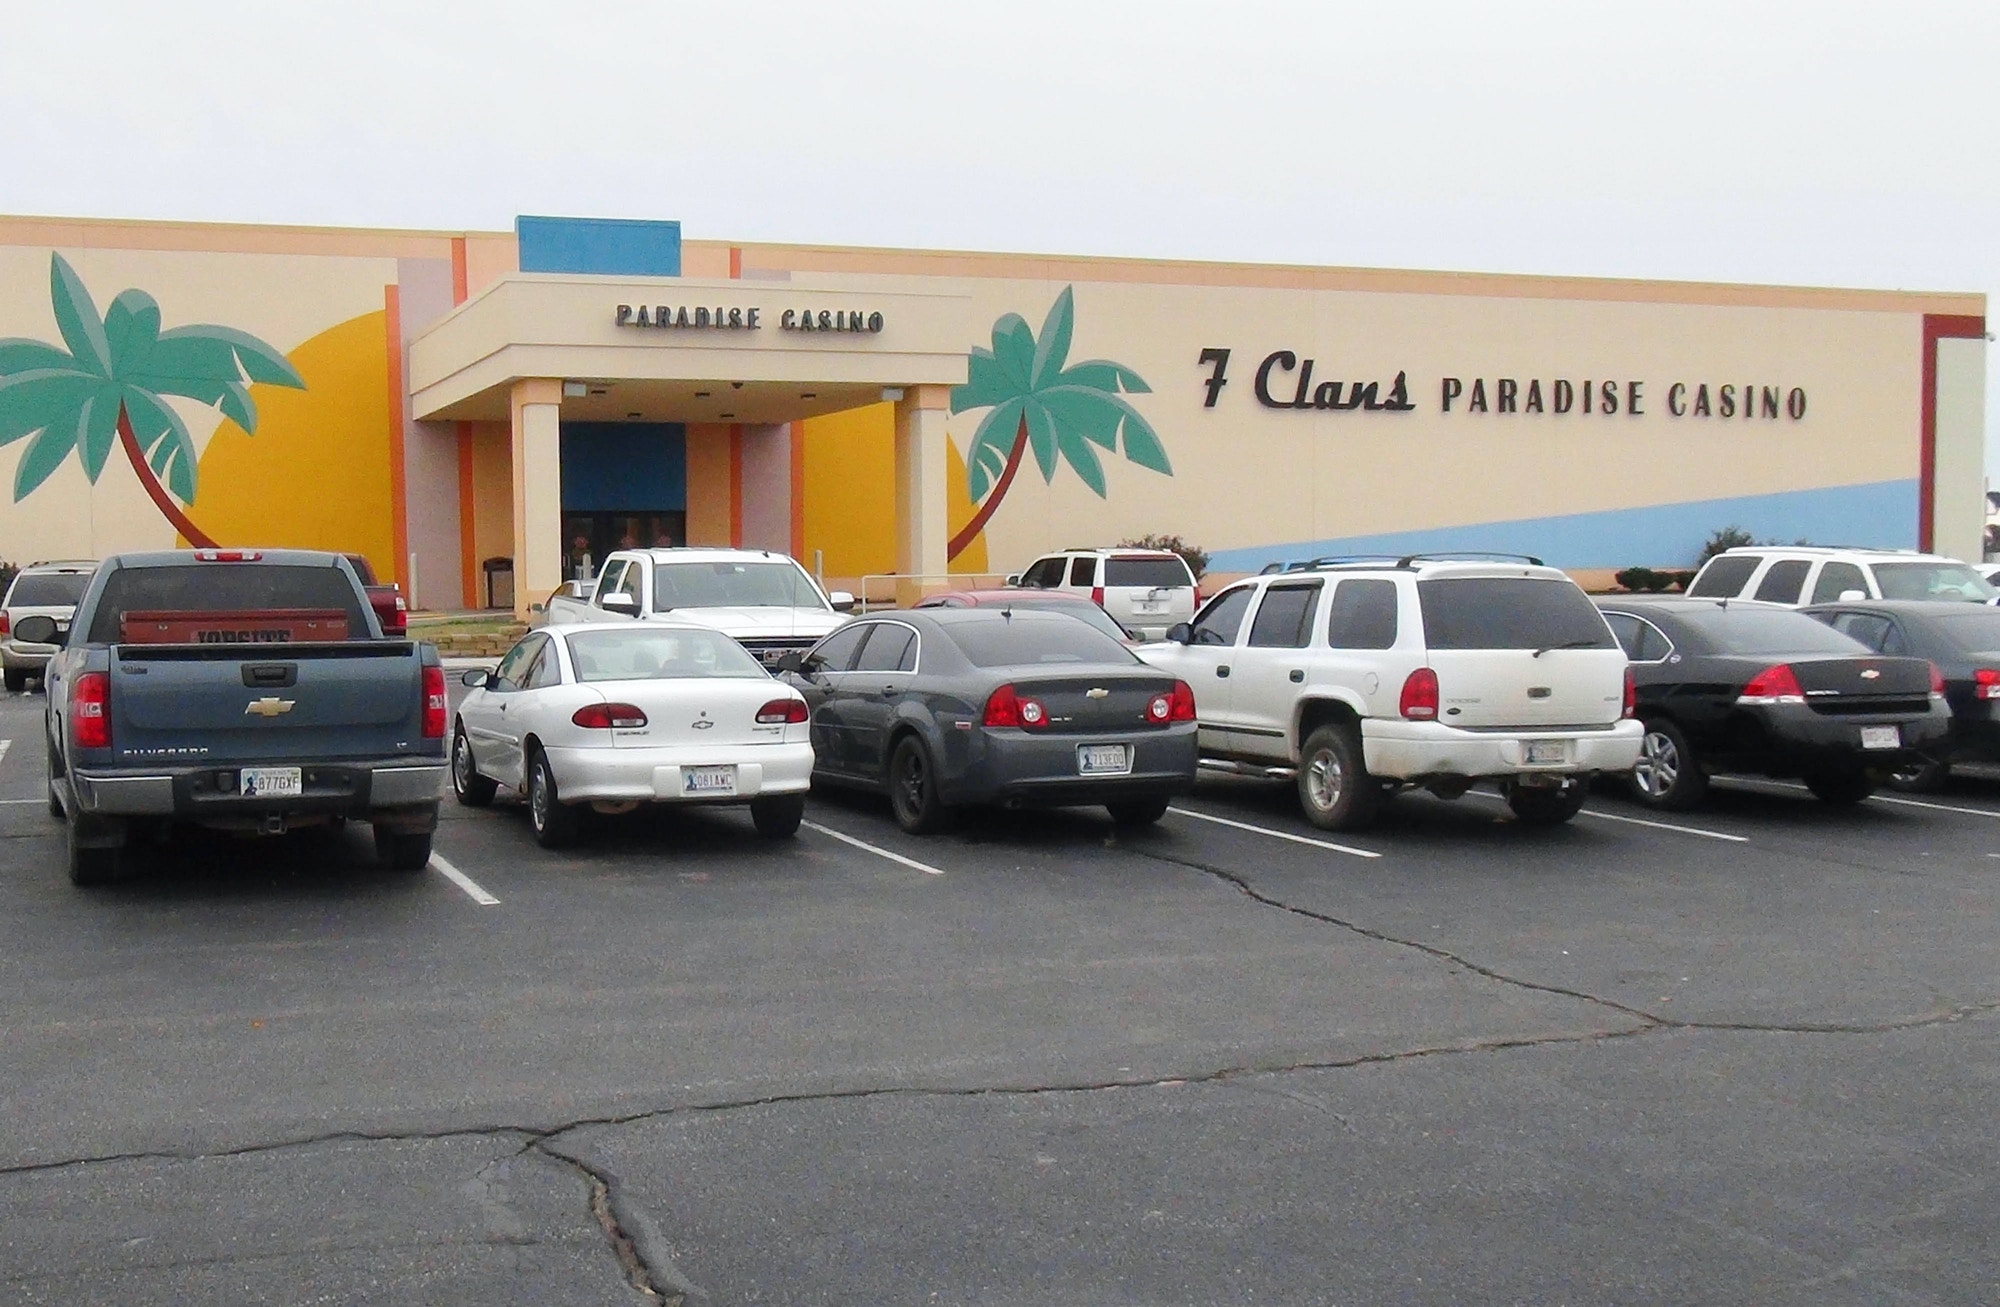 The 7 Clans Paradise Casino stands in Red Rock, Oklahoma, on Nov. 4, 2014.